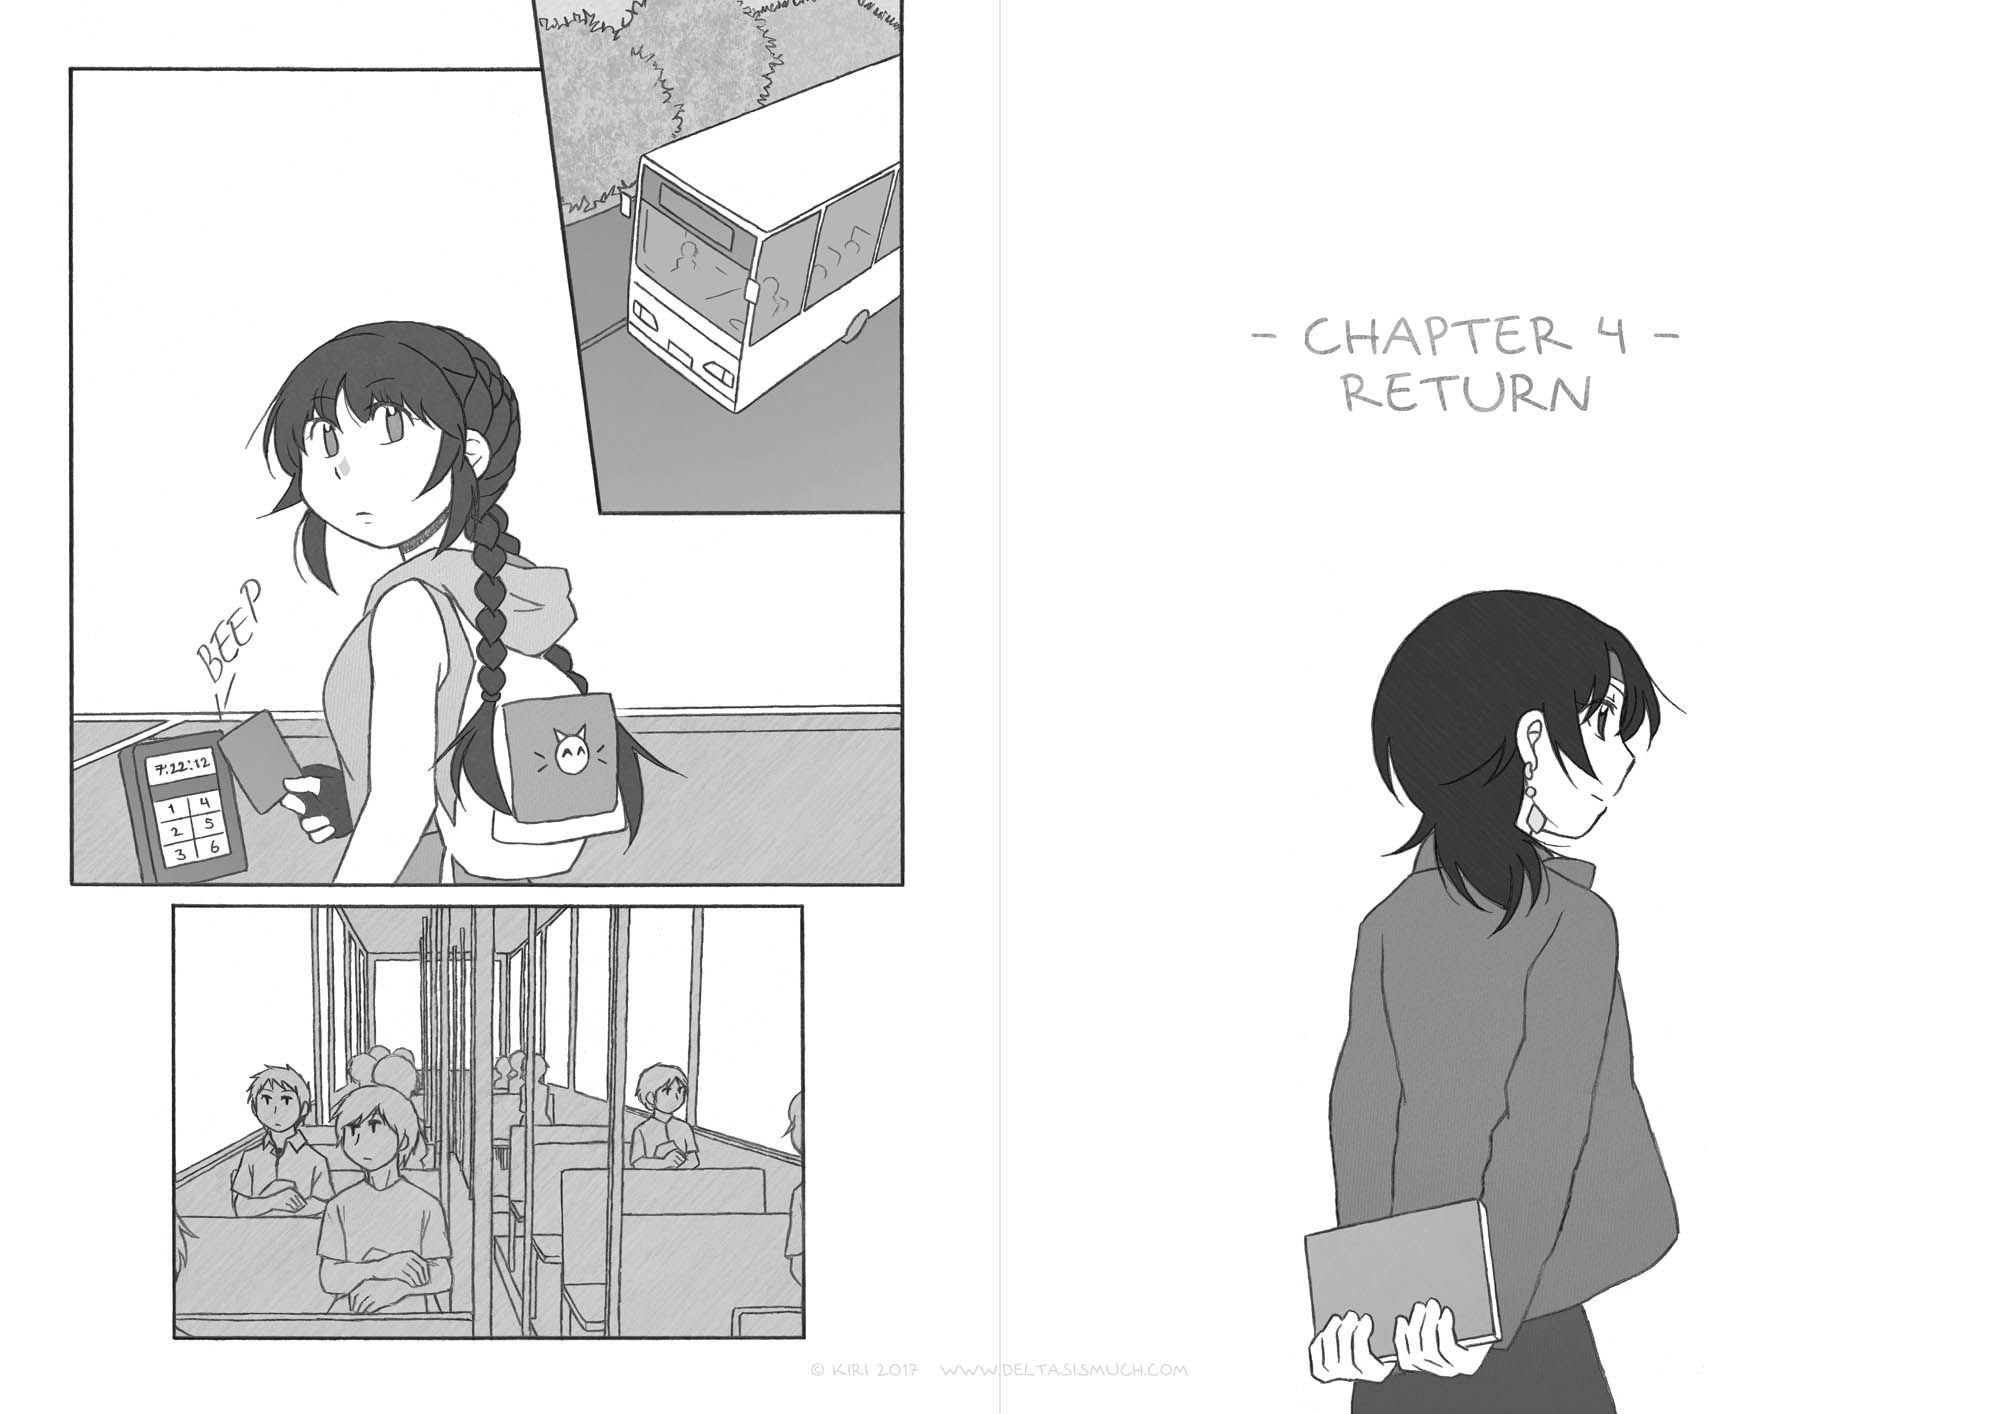 Chapter 4, pages 1 and 2